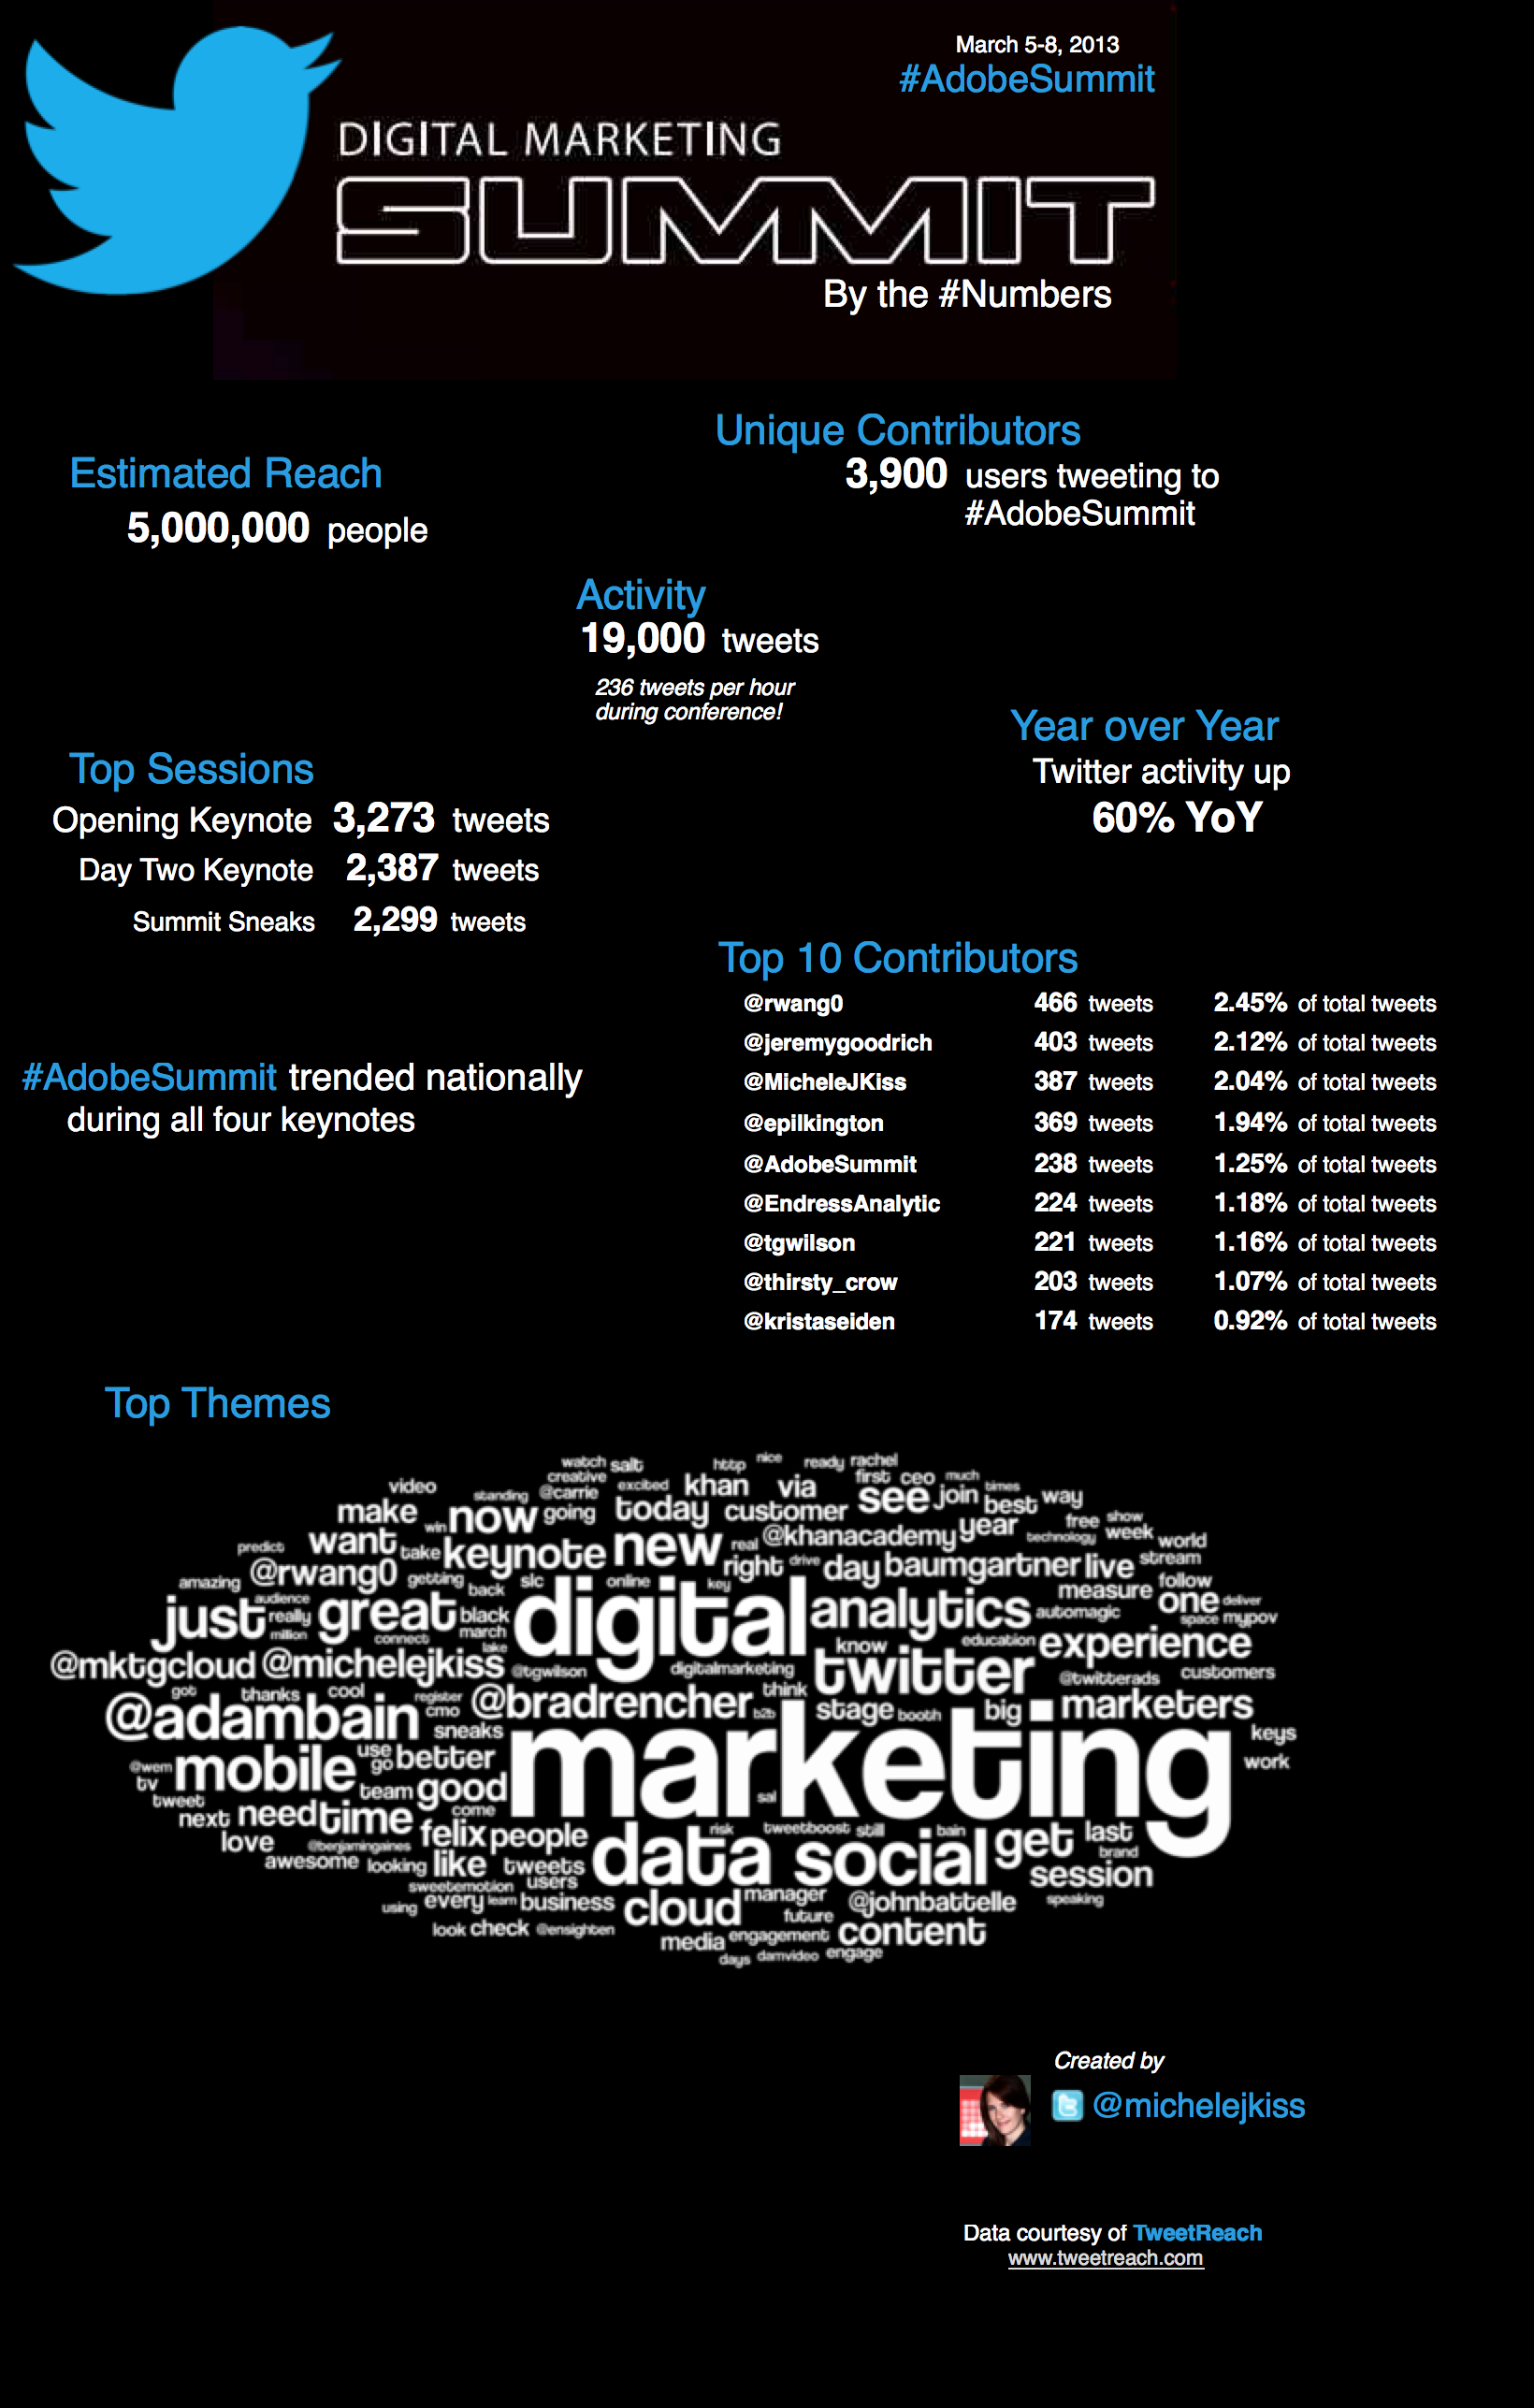 AdobeSummit Twitter by the Numbers